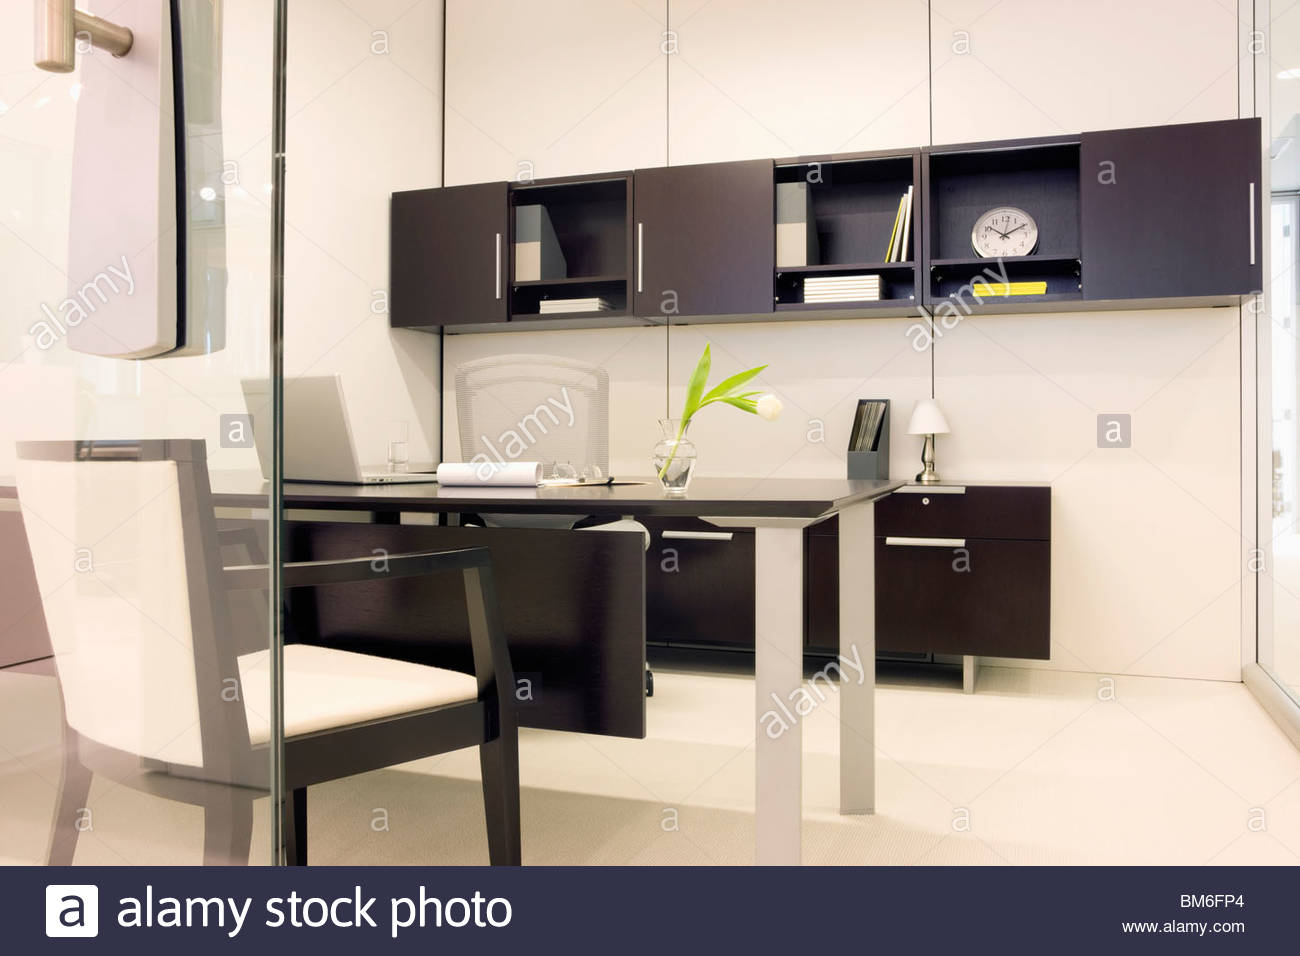 Empty modern office with glass walls - Stock Image